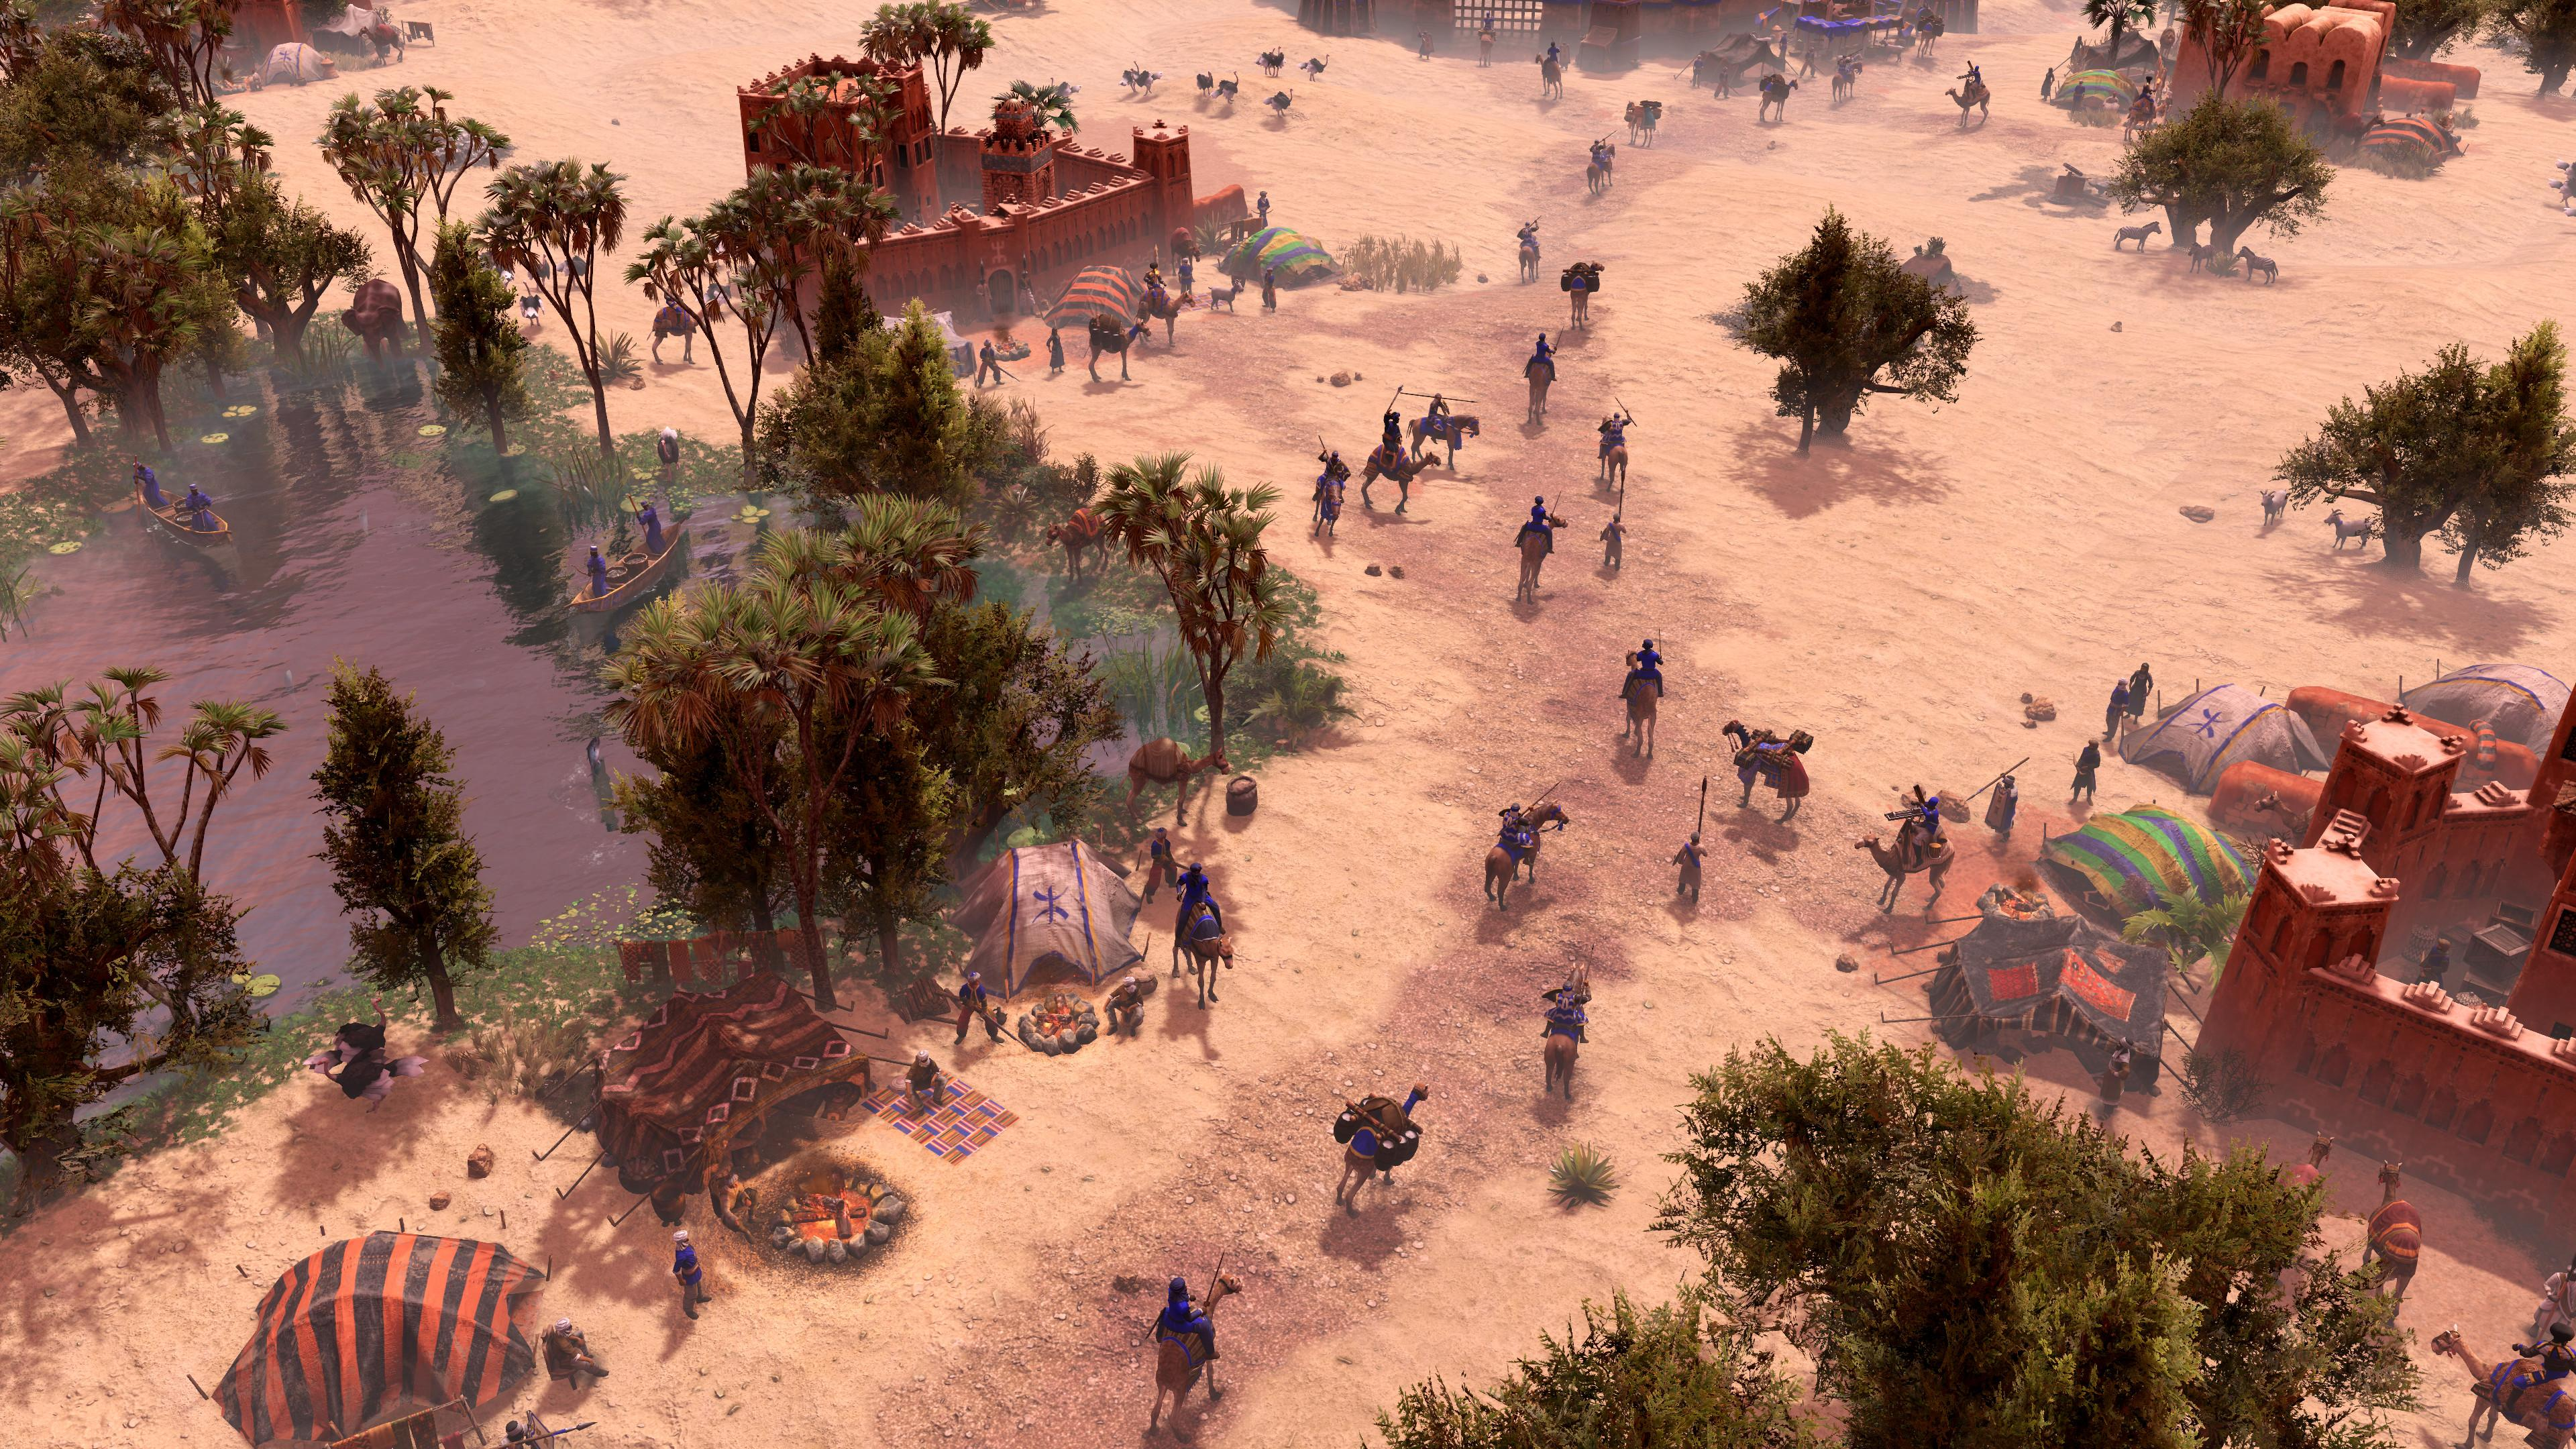 Age Of Empires 3 African Royals introduces two new civilizations to the game